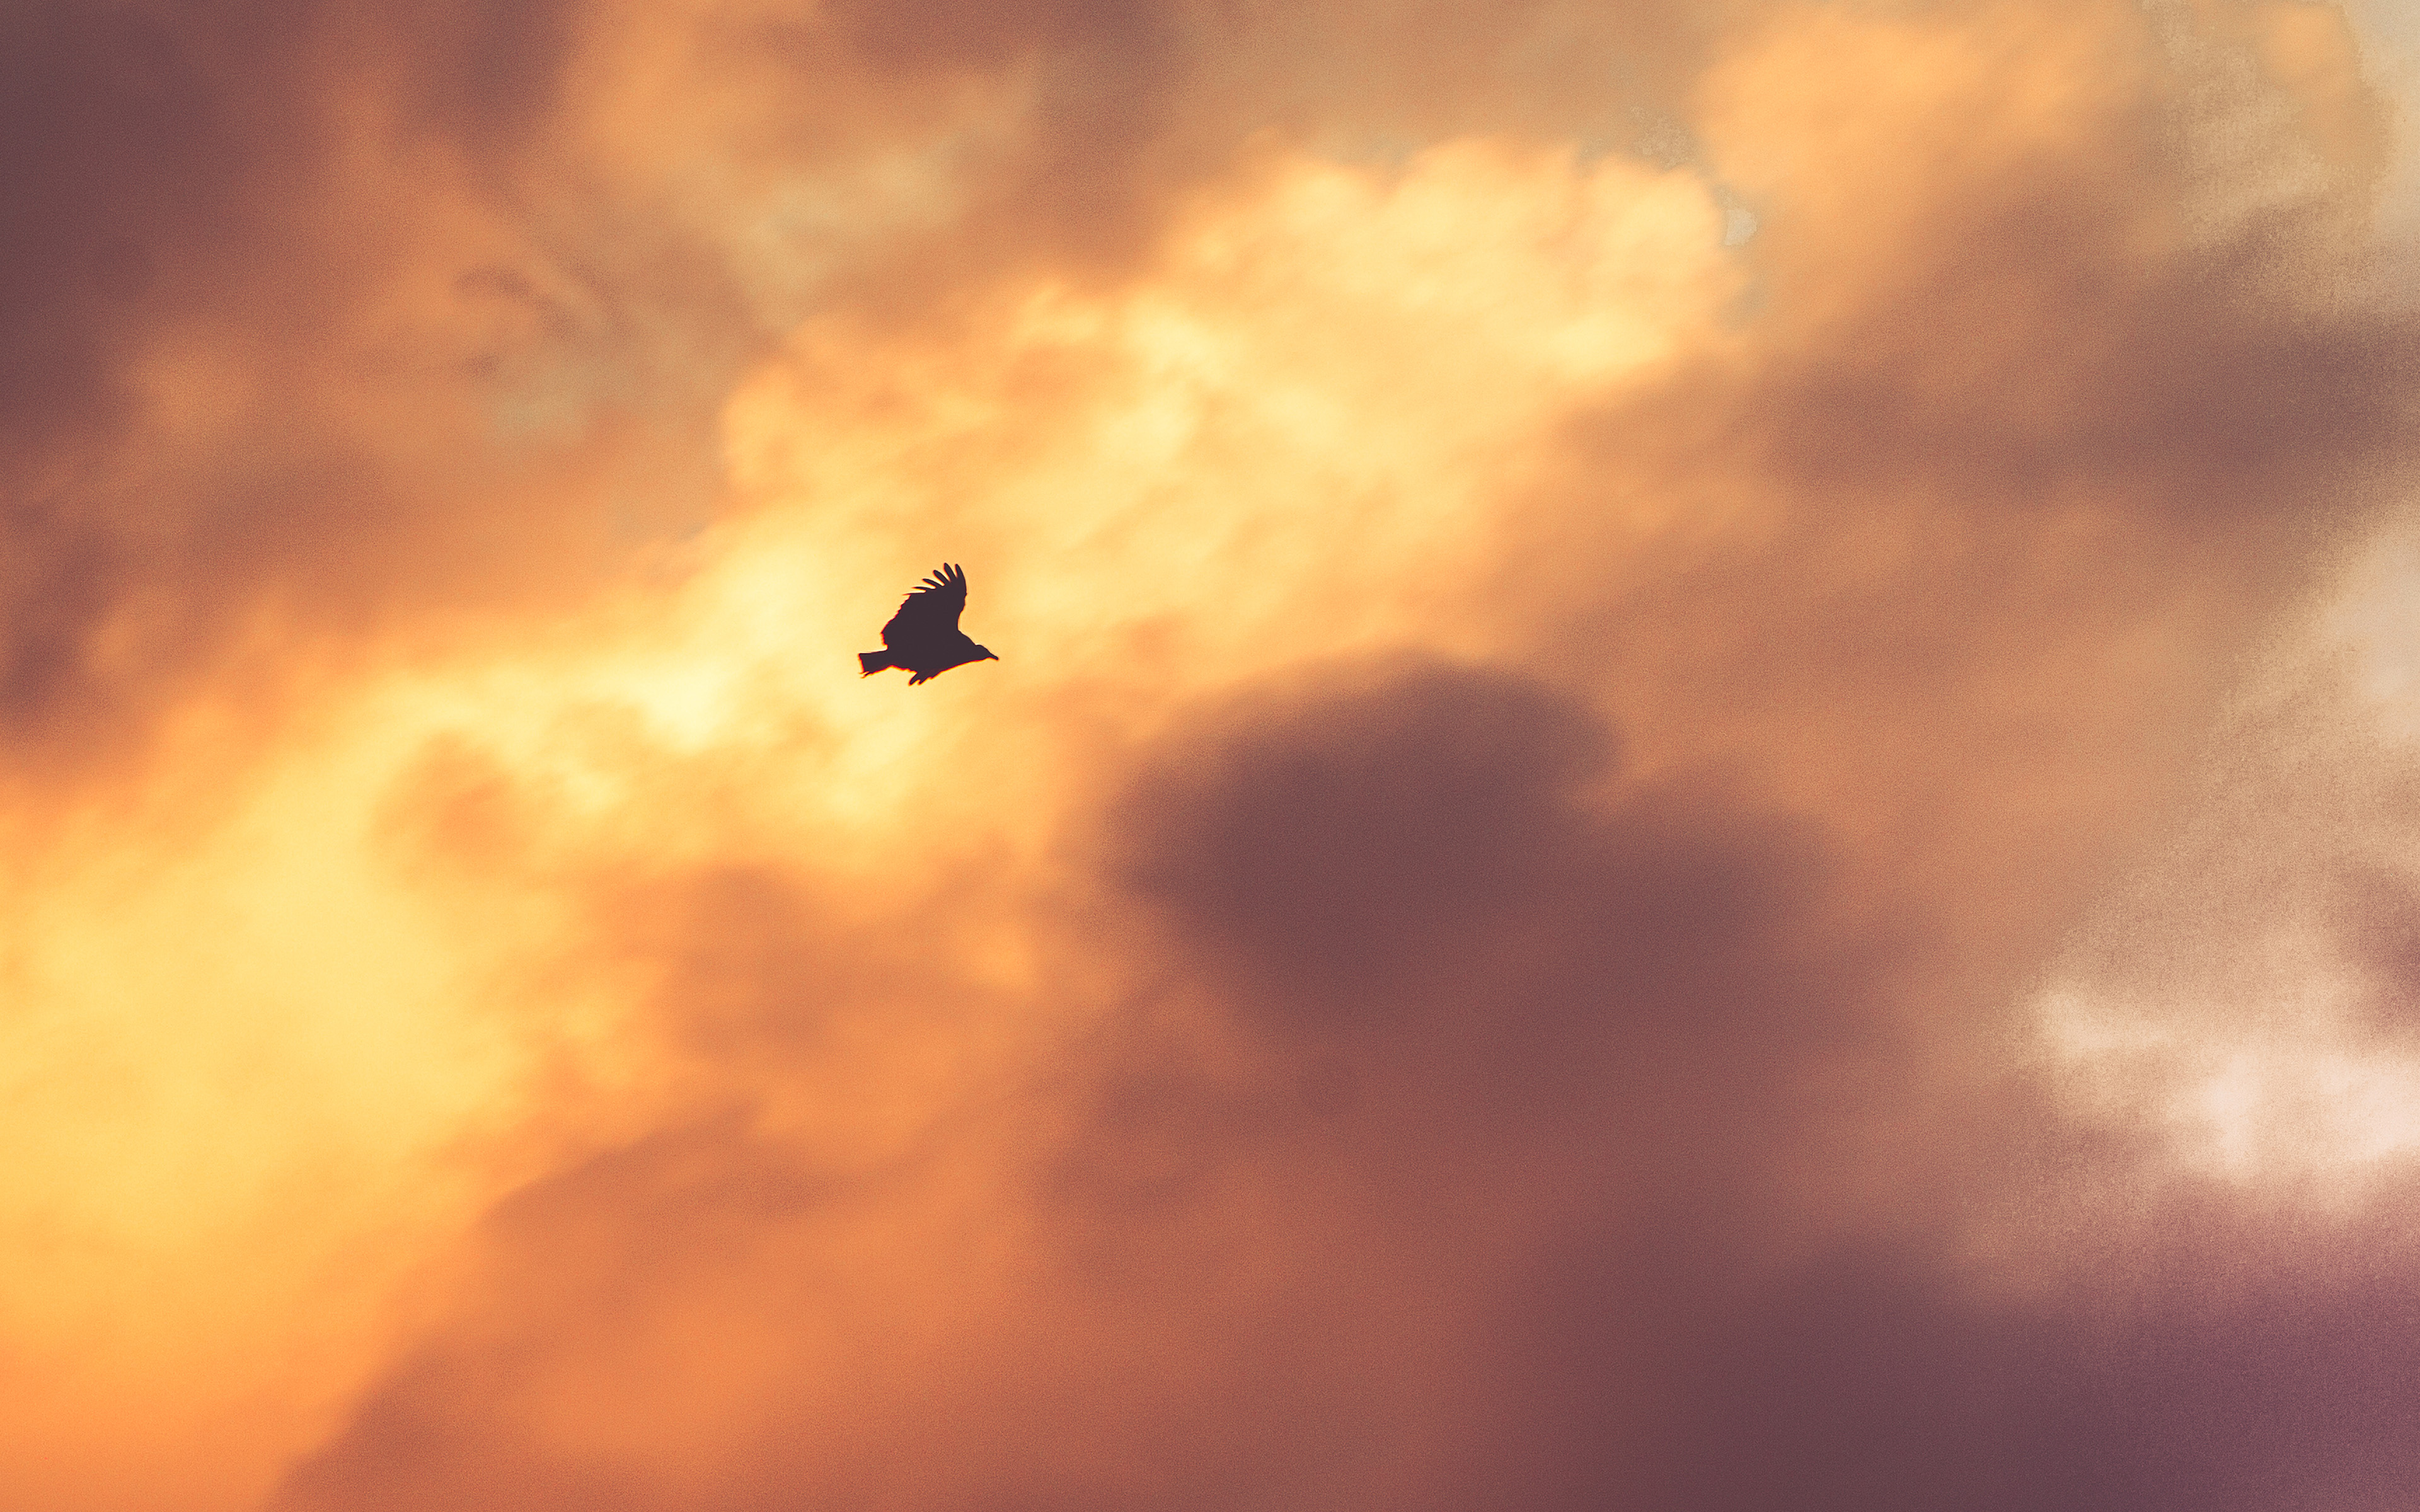 mu07-bird-fly-sky-clouds-red-sunset-nature-animal - Papers.co